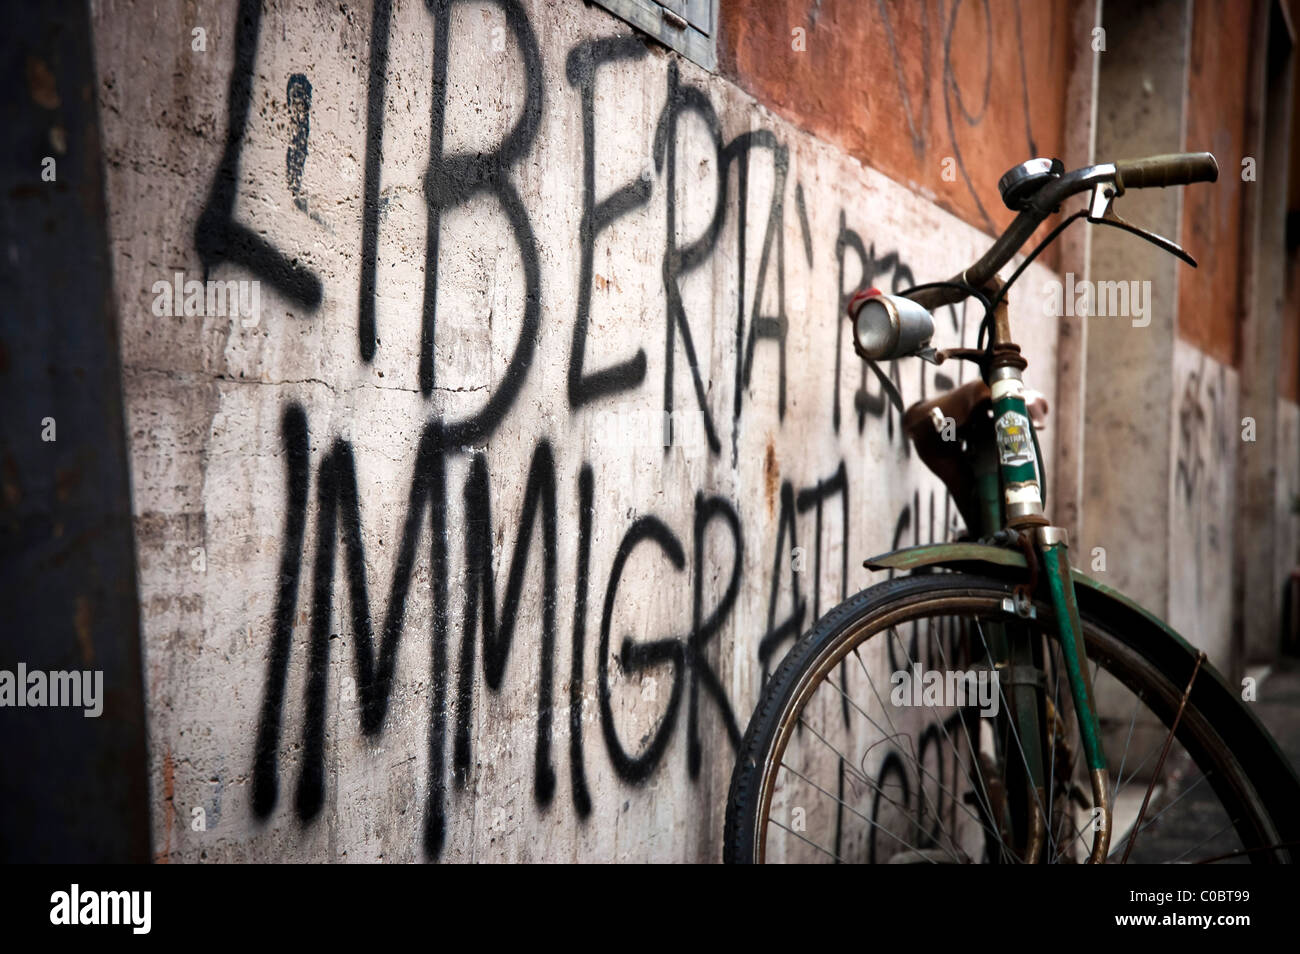 'Free immigration' is written on a Trastevere wall, Rome, Italy - Stock Image